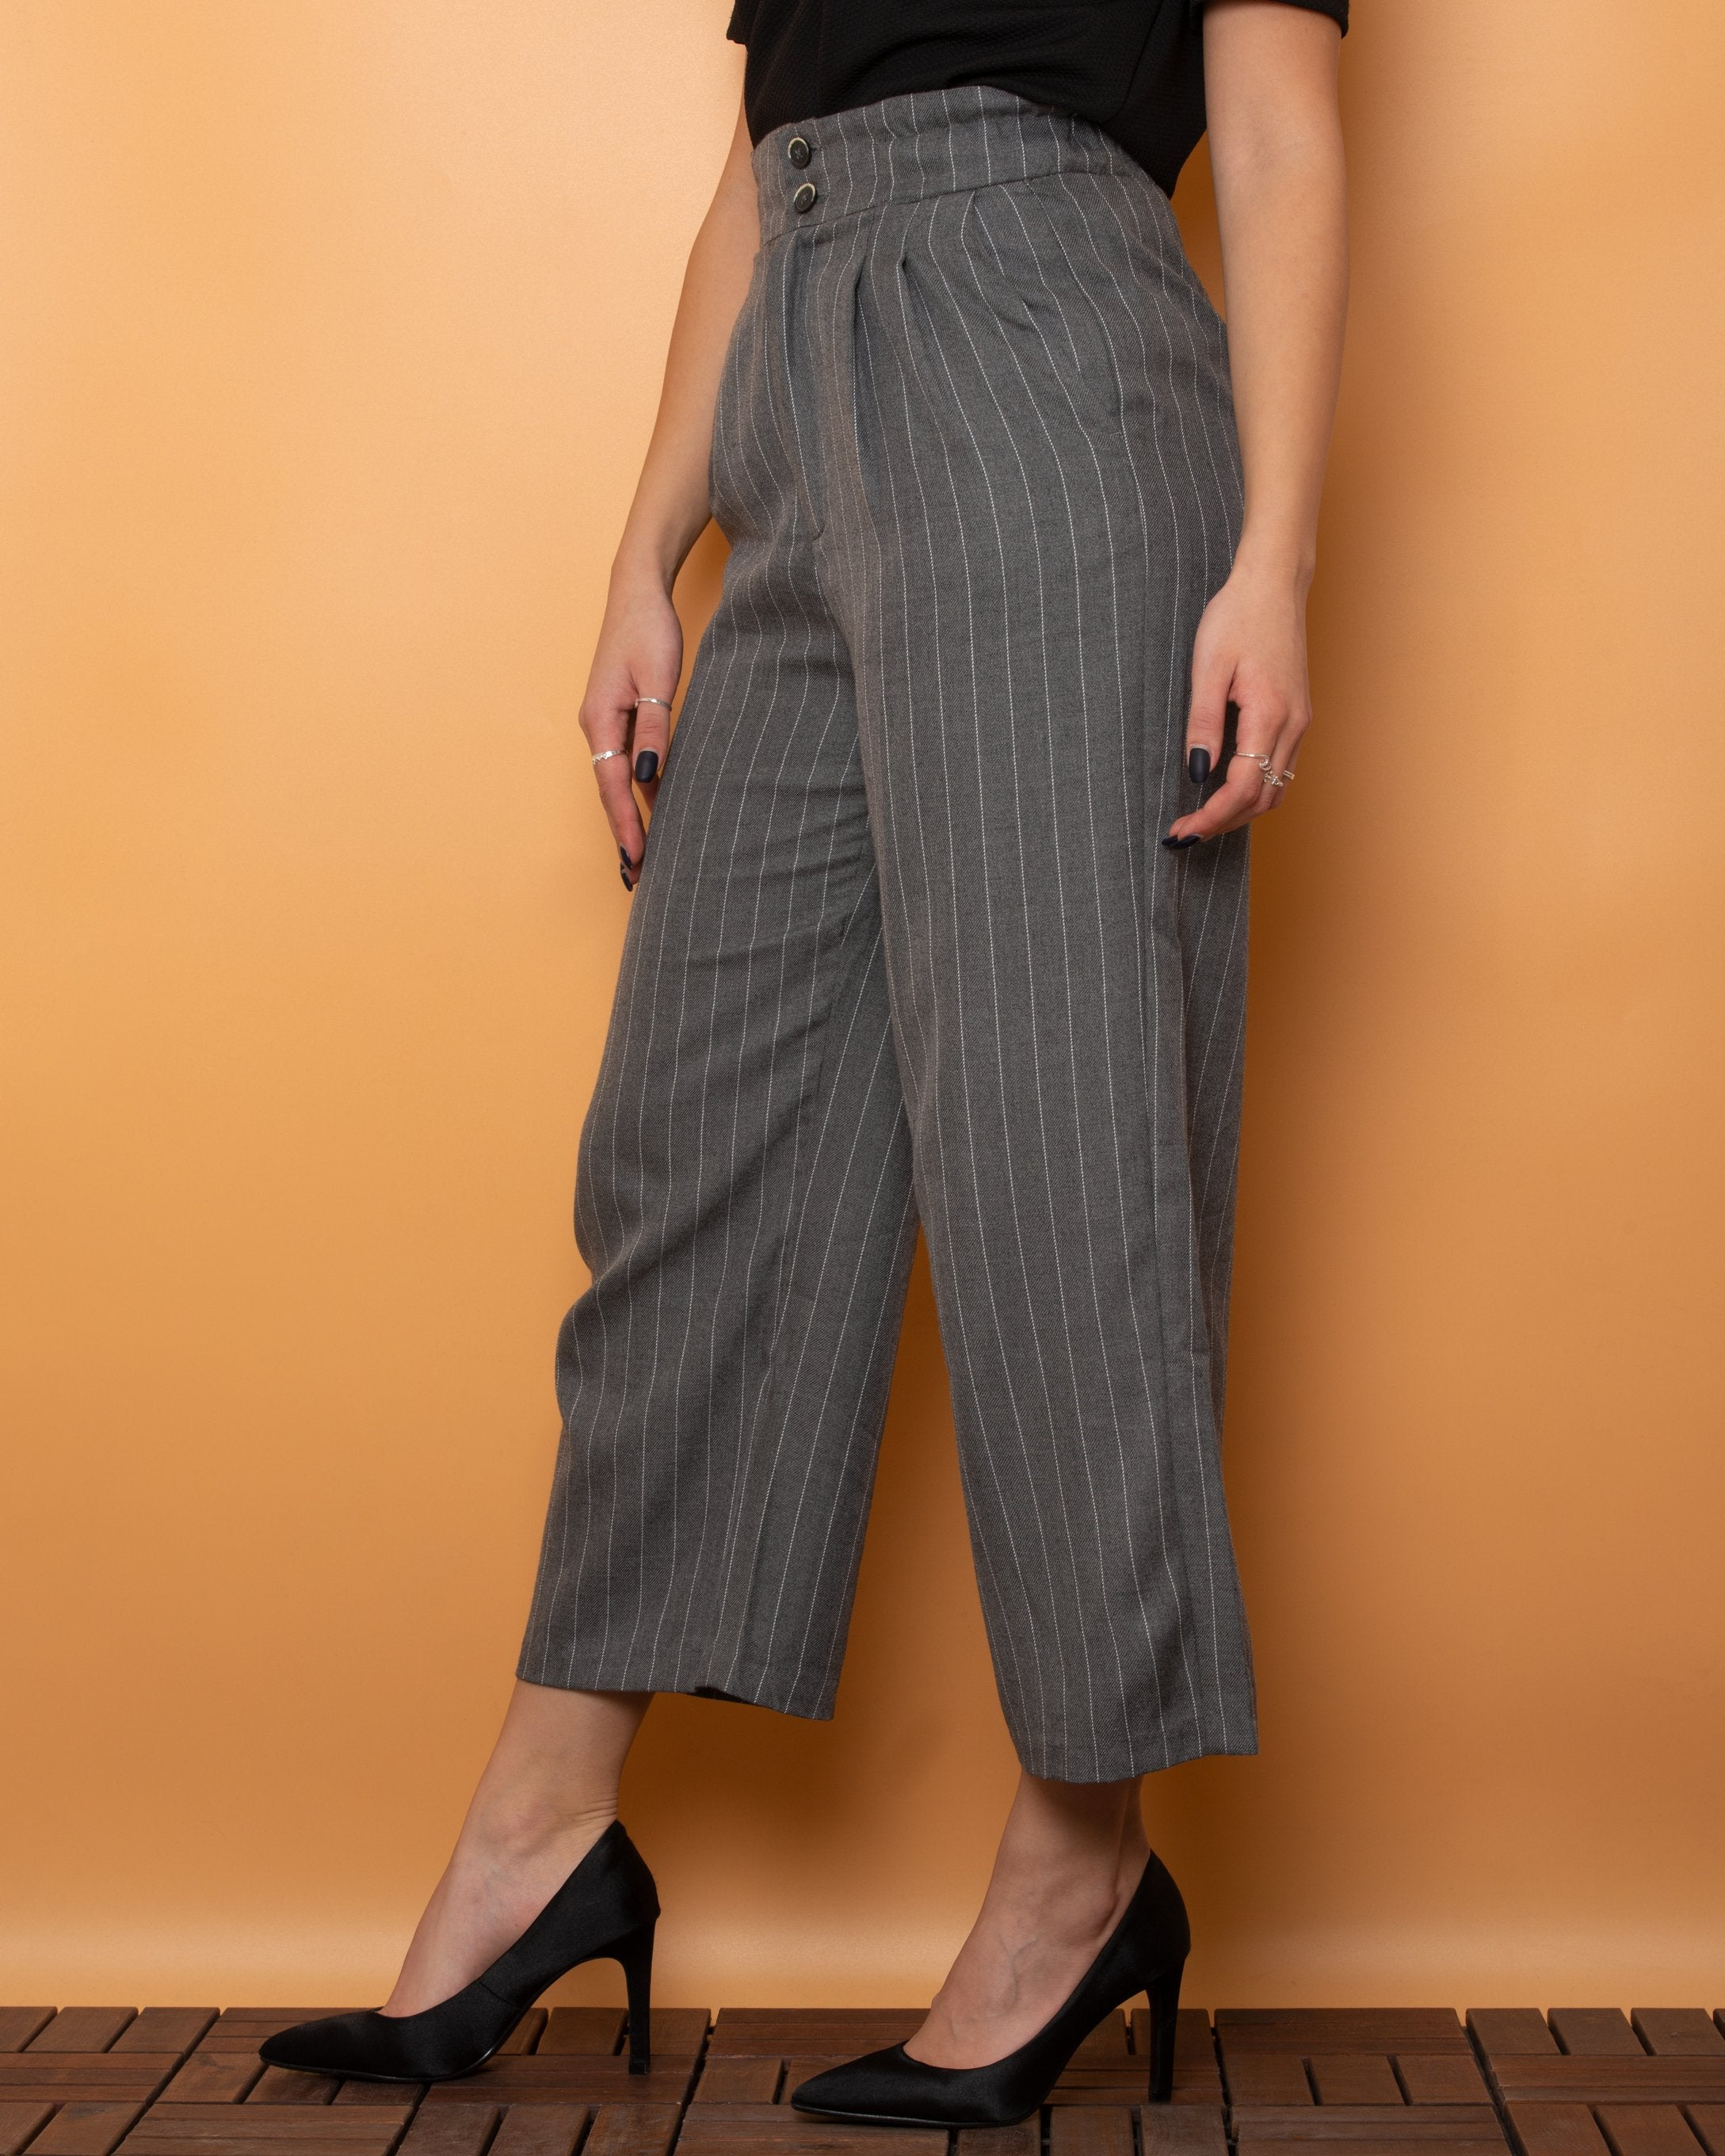 Stradivarius Fabric Pants High Waist Grey